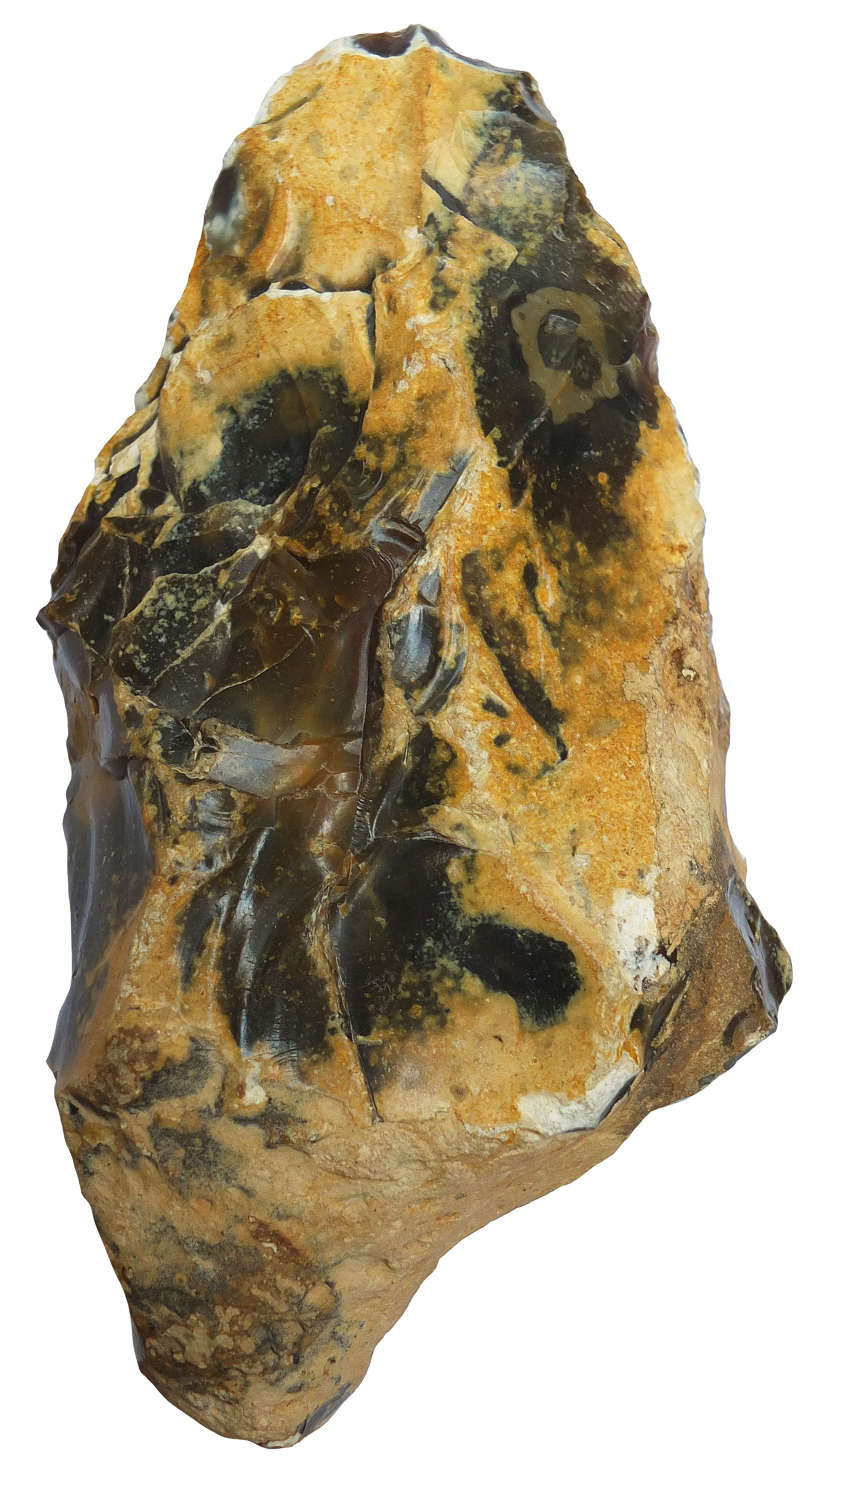 A Lower Palaeolithic flint handaxe from Oise, Picardie, France